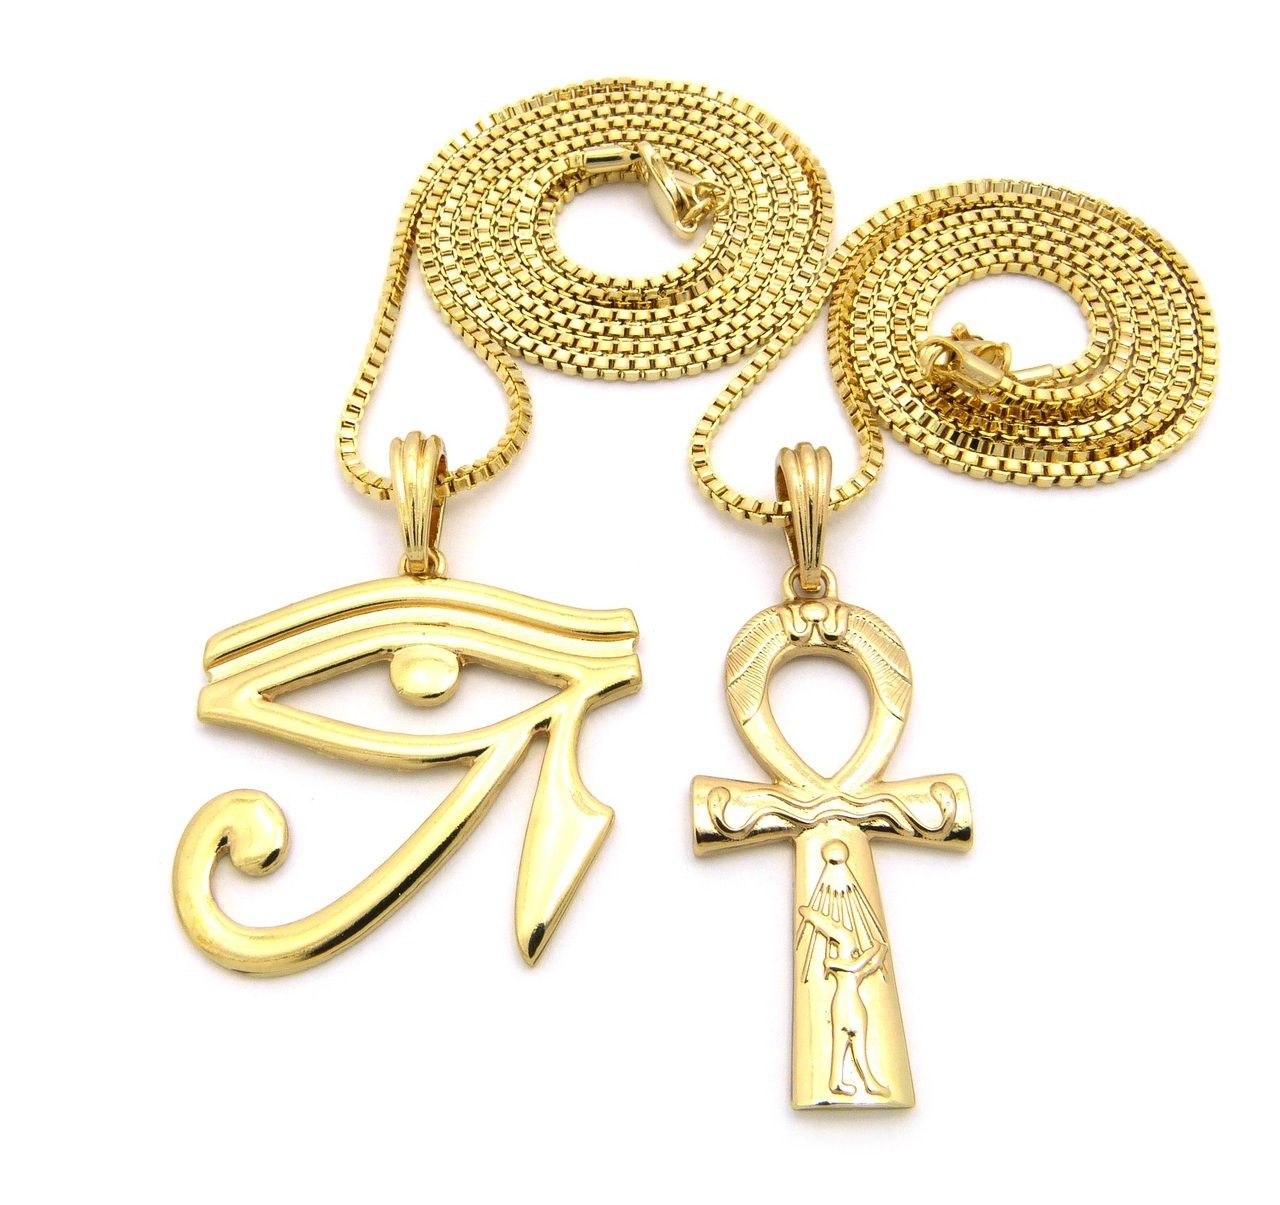 Eye Of Ra Ankh Cross Small Micro Pendant Chain Necklace Gold Bling